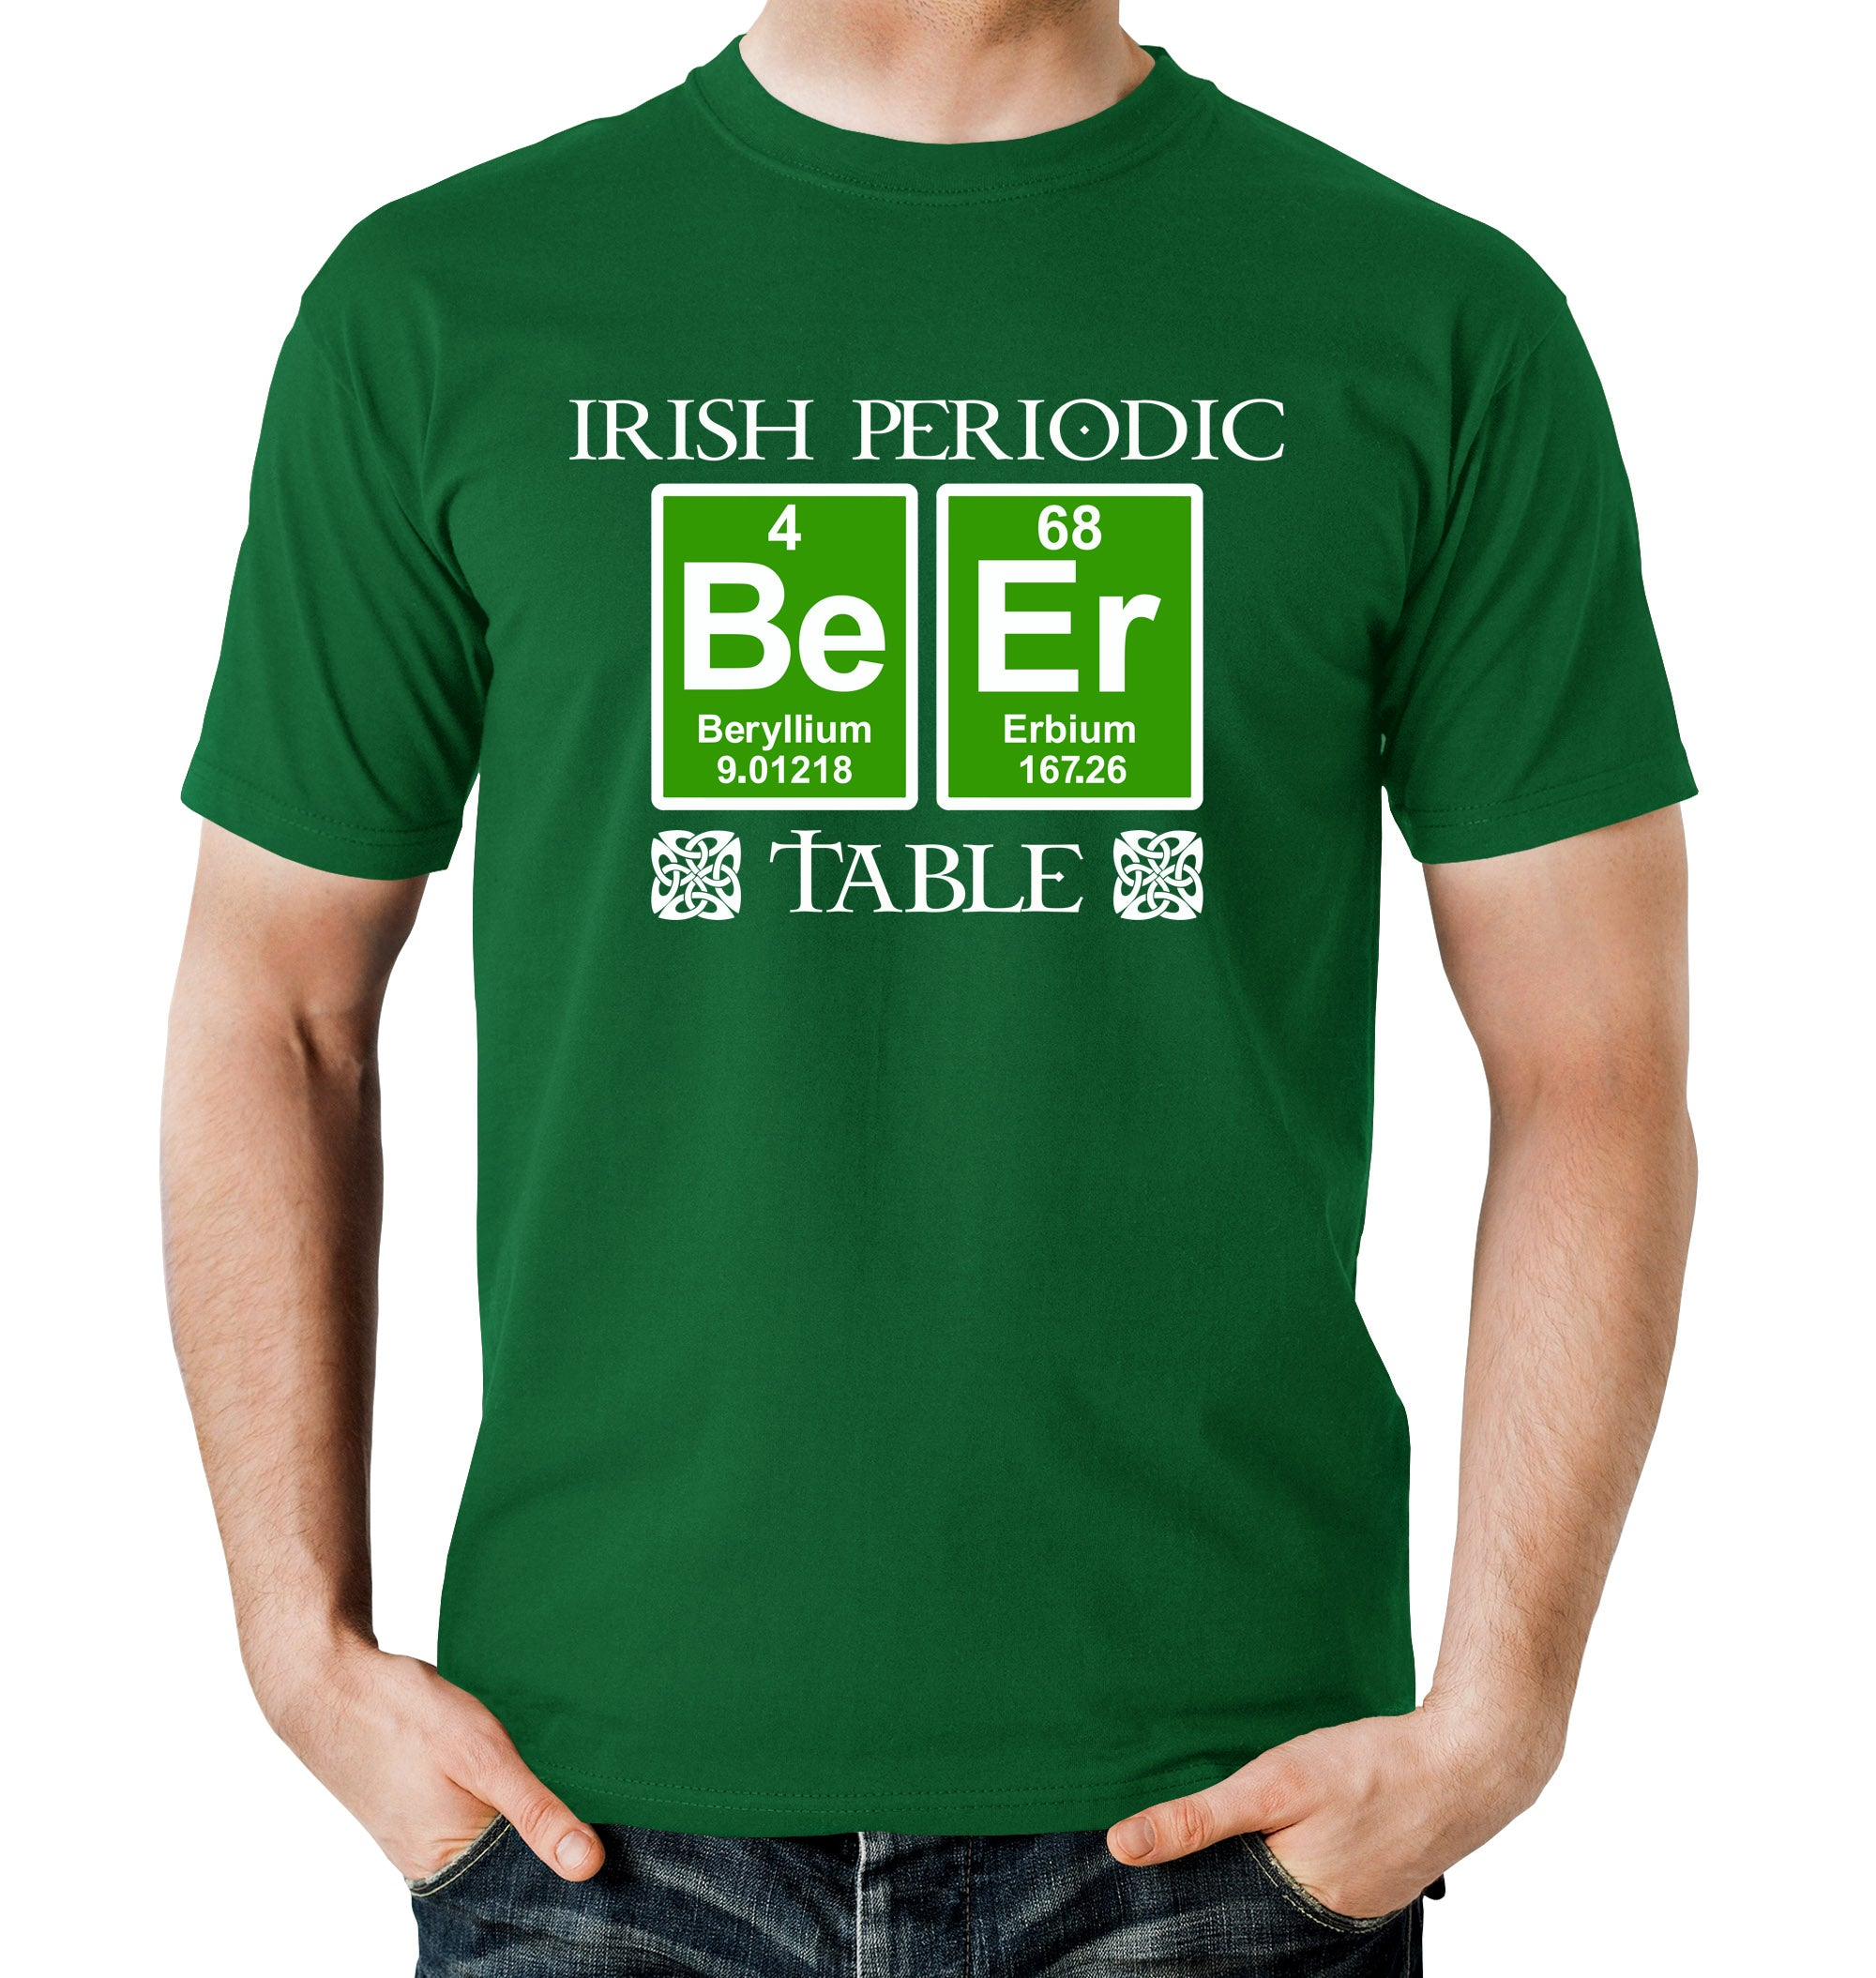 Irish Periodic Table St. Paddy's Day Beer T-Shirt on Model